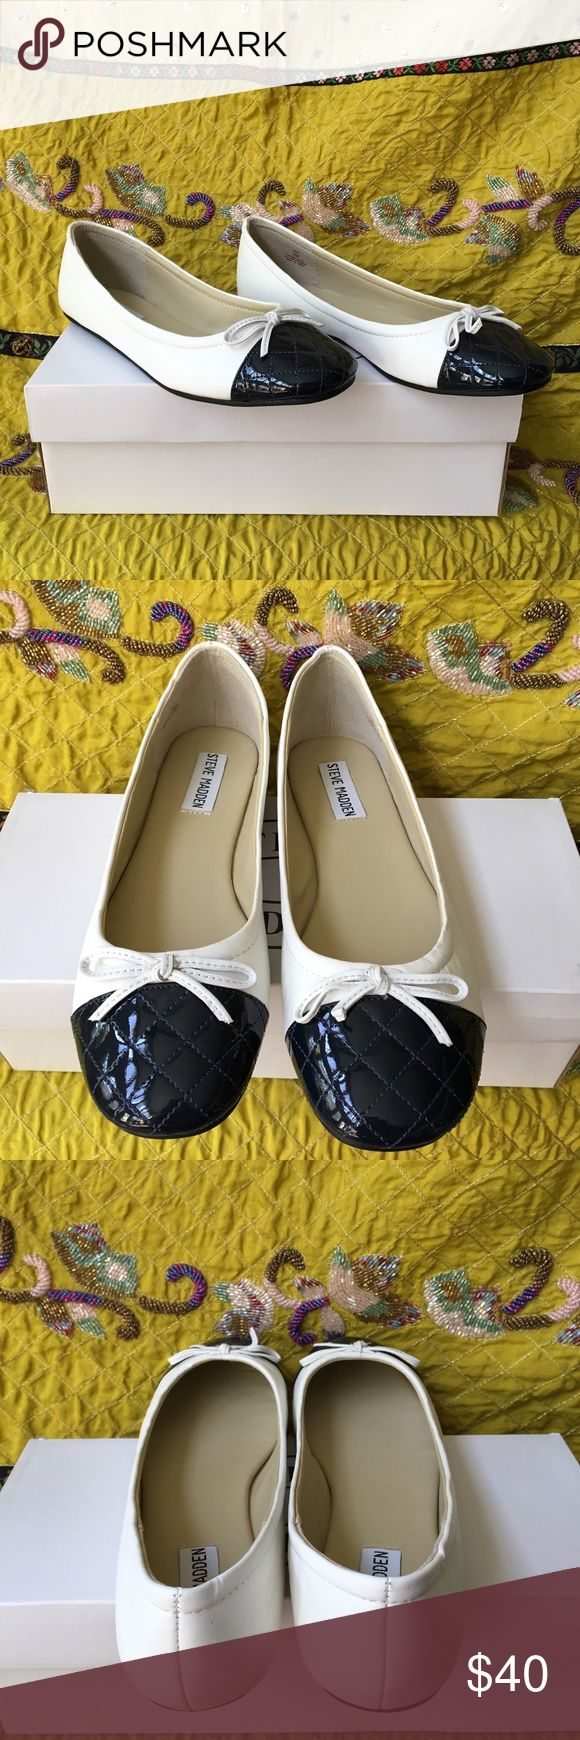 💥NWT Steven Madden Quilted Ballet Flats💥 Never been worn and new in box! Steve Madden white ballet flats. Navy blue patent leather quilted toe. Steve Madden Shoes Flats & Loafers